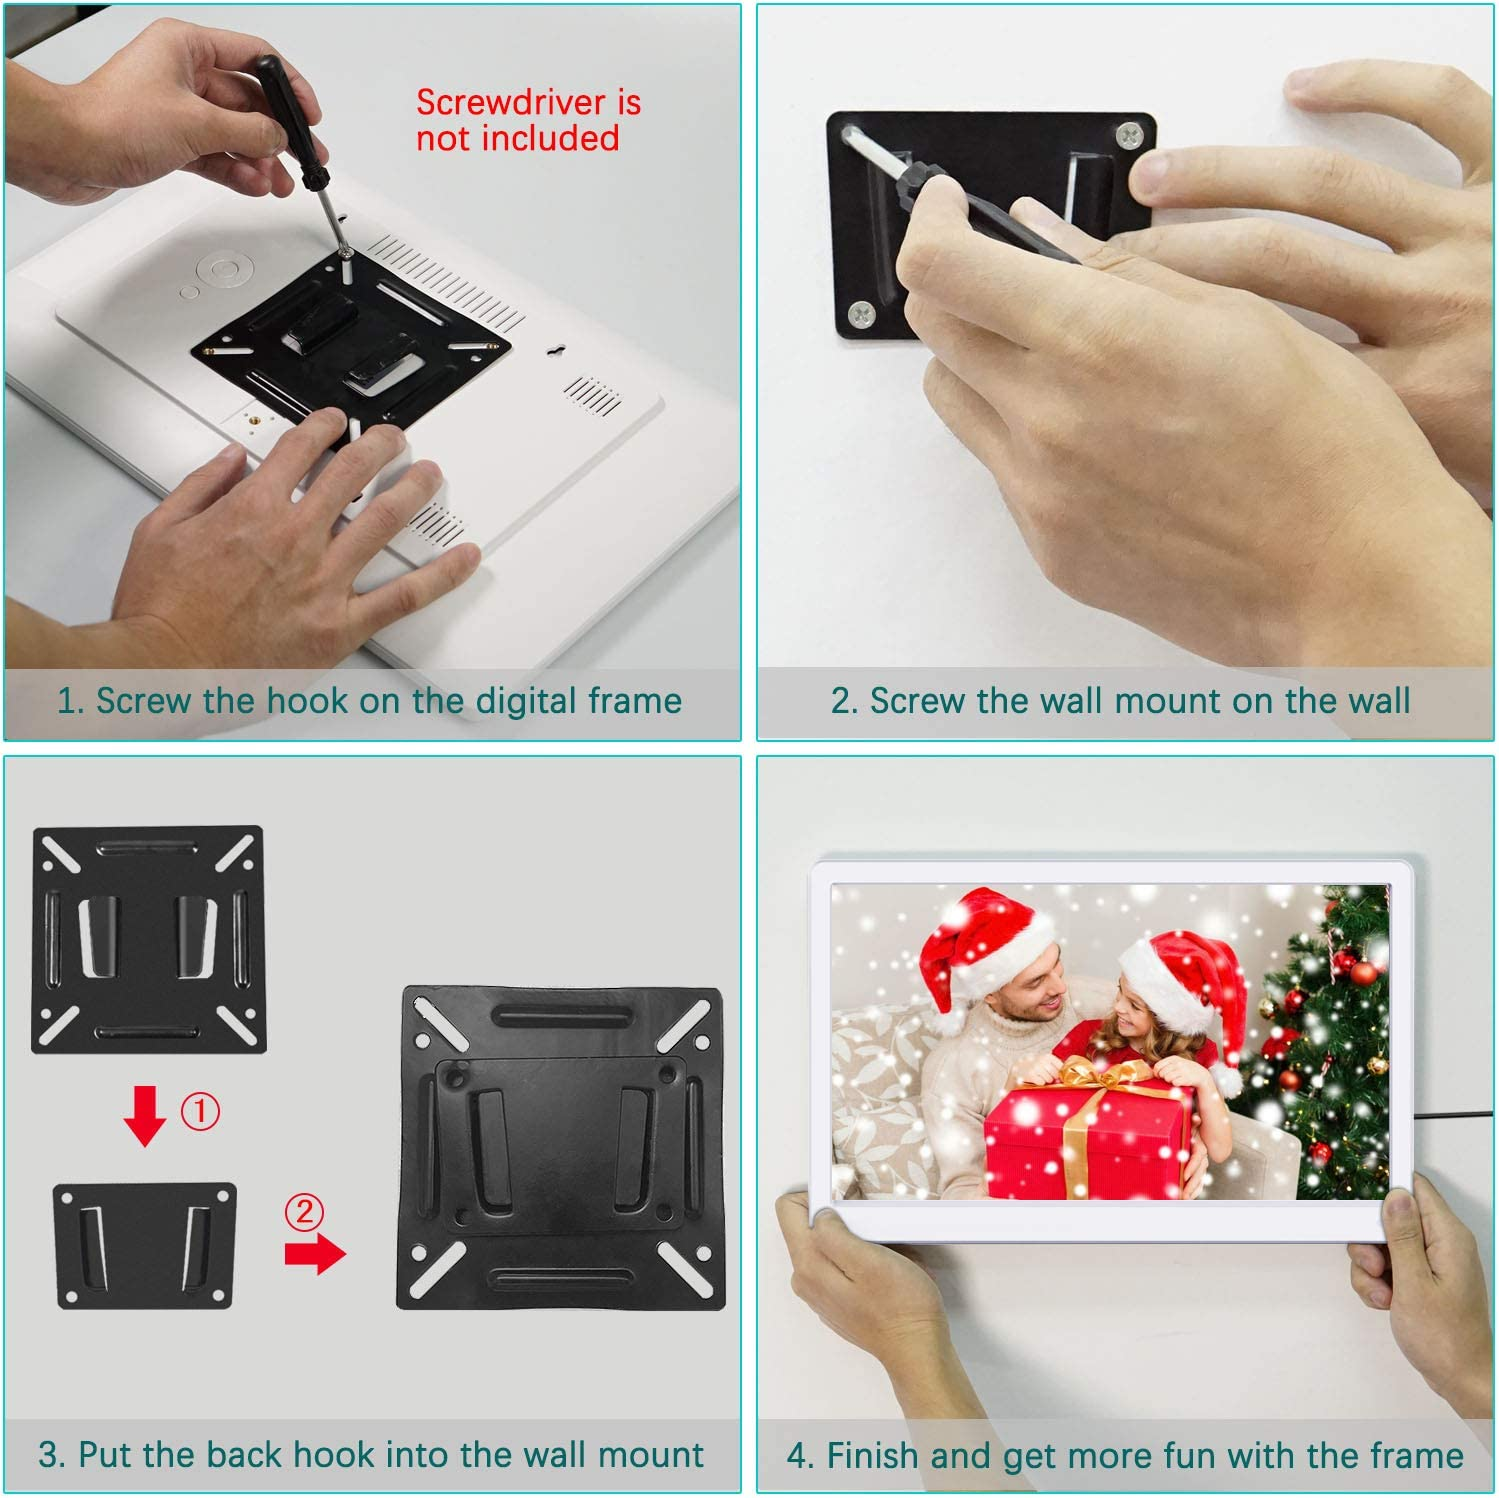 Auto Play Photo//Video//Music Auto Turn On//Off Include 32GB SD Card Photo Auto Rotate Digital Picture Frame 10.1 Inch 1920x1080 Motion Sensor 16:9 IPS Screen Digital Video Frame Background Music